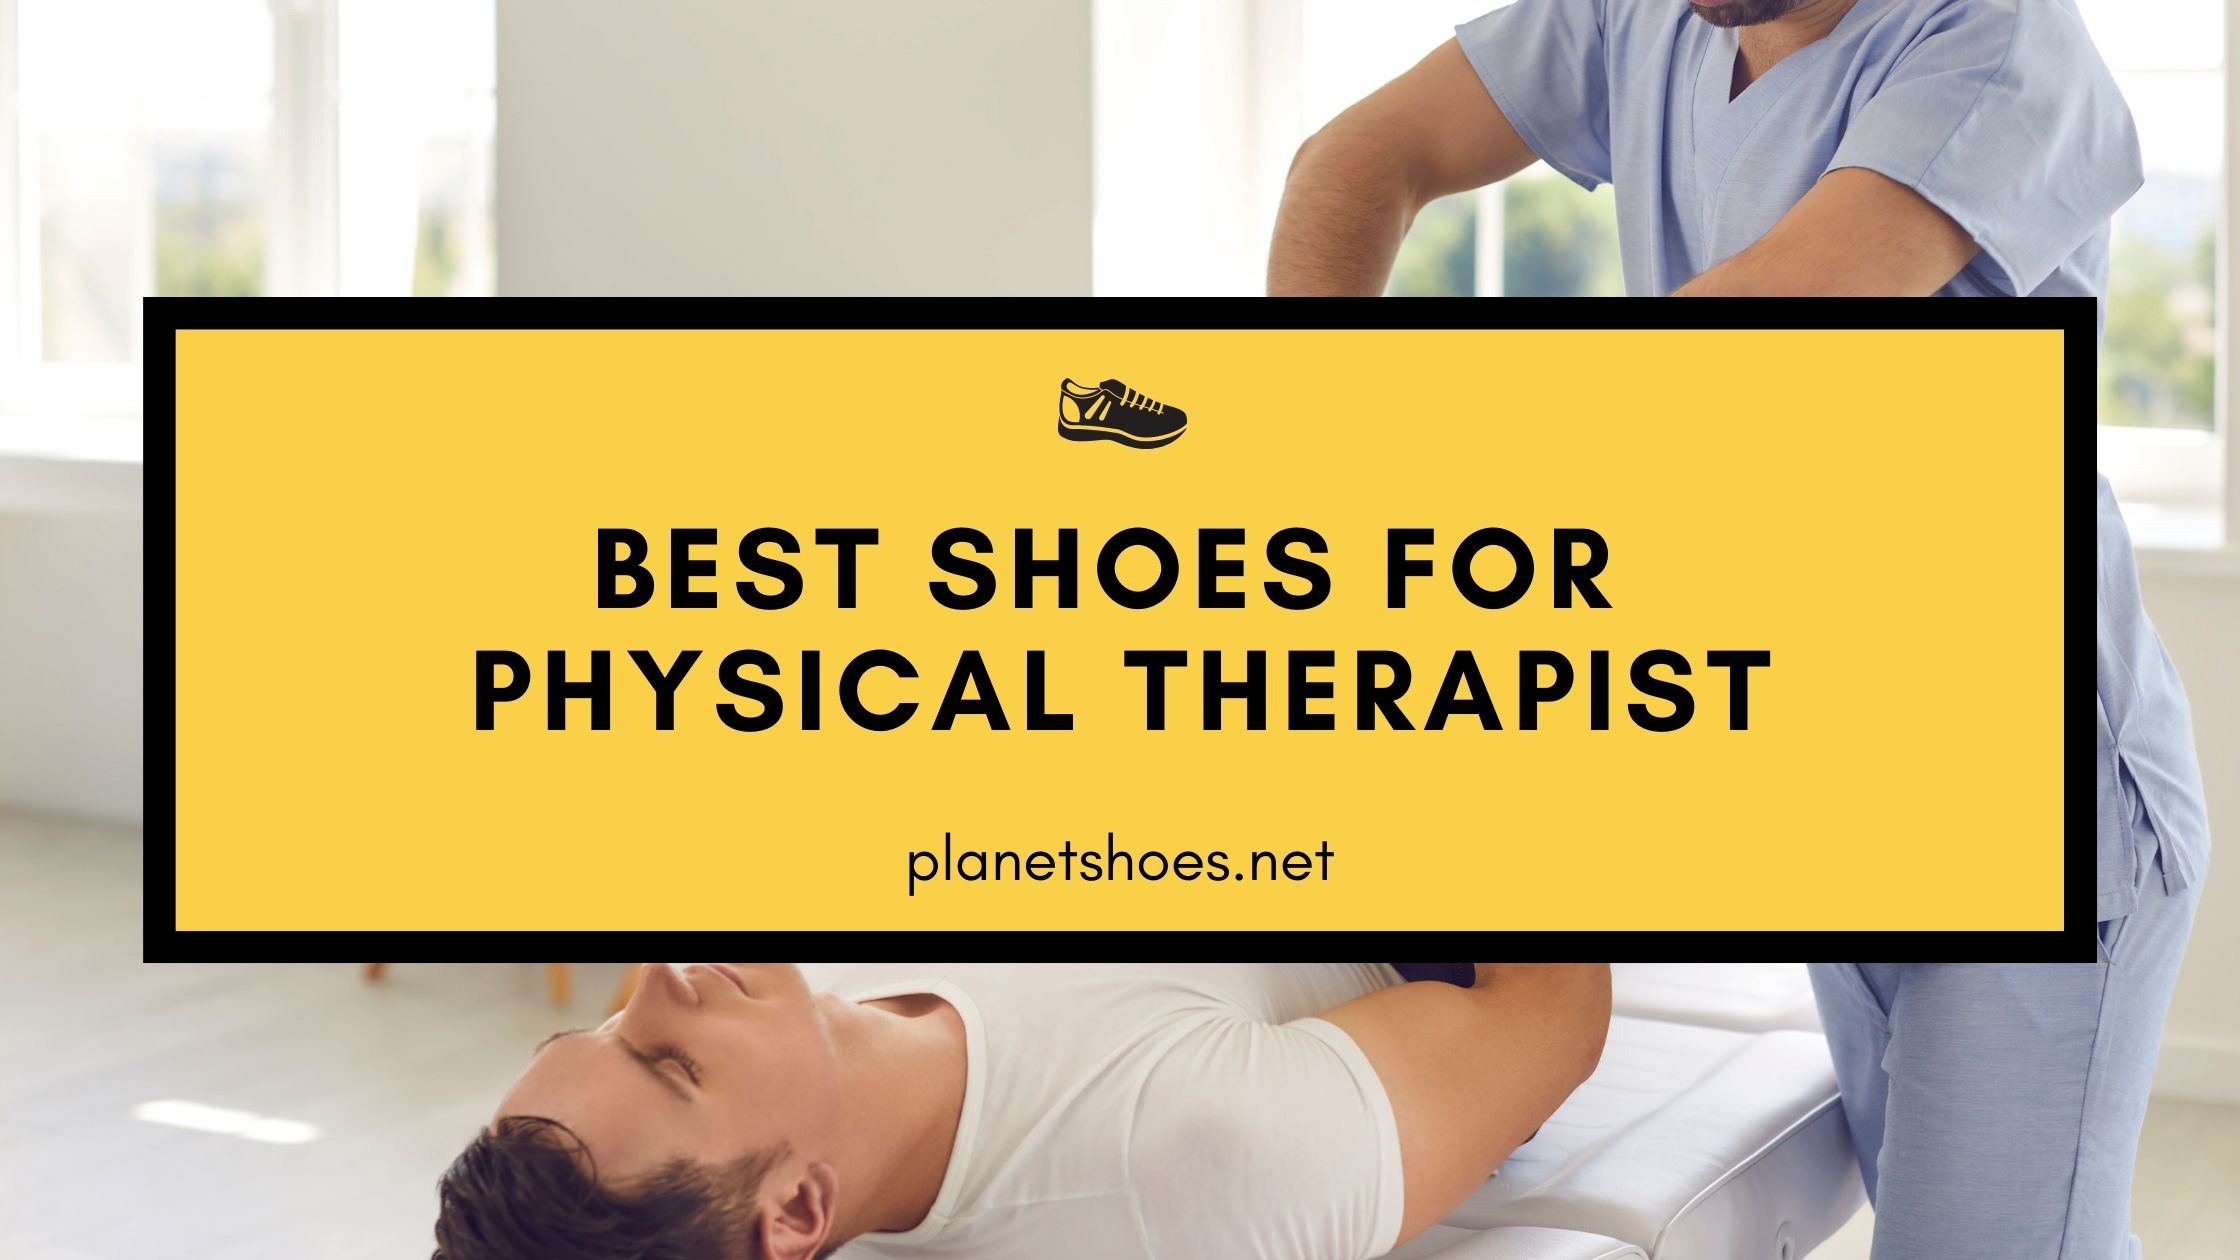 PS-Best-shoes-for-physical-therapist